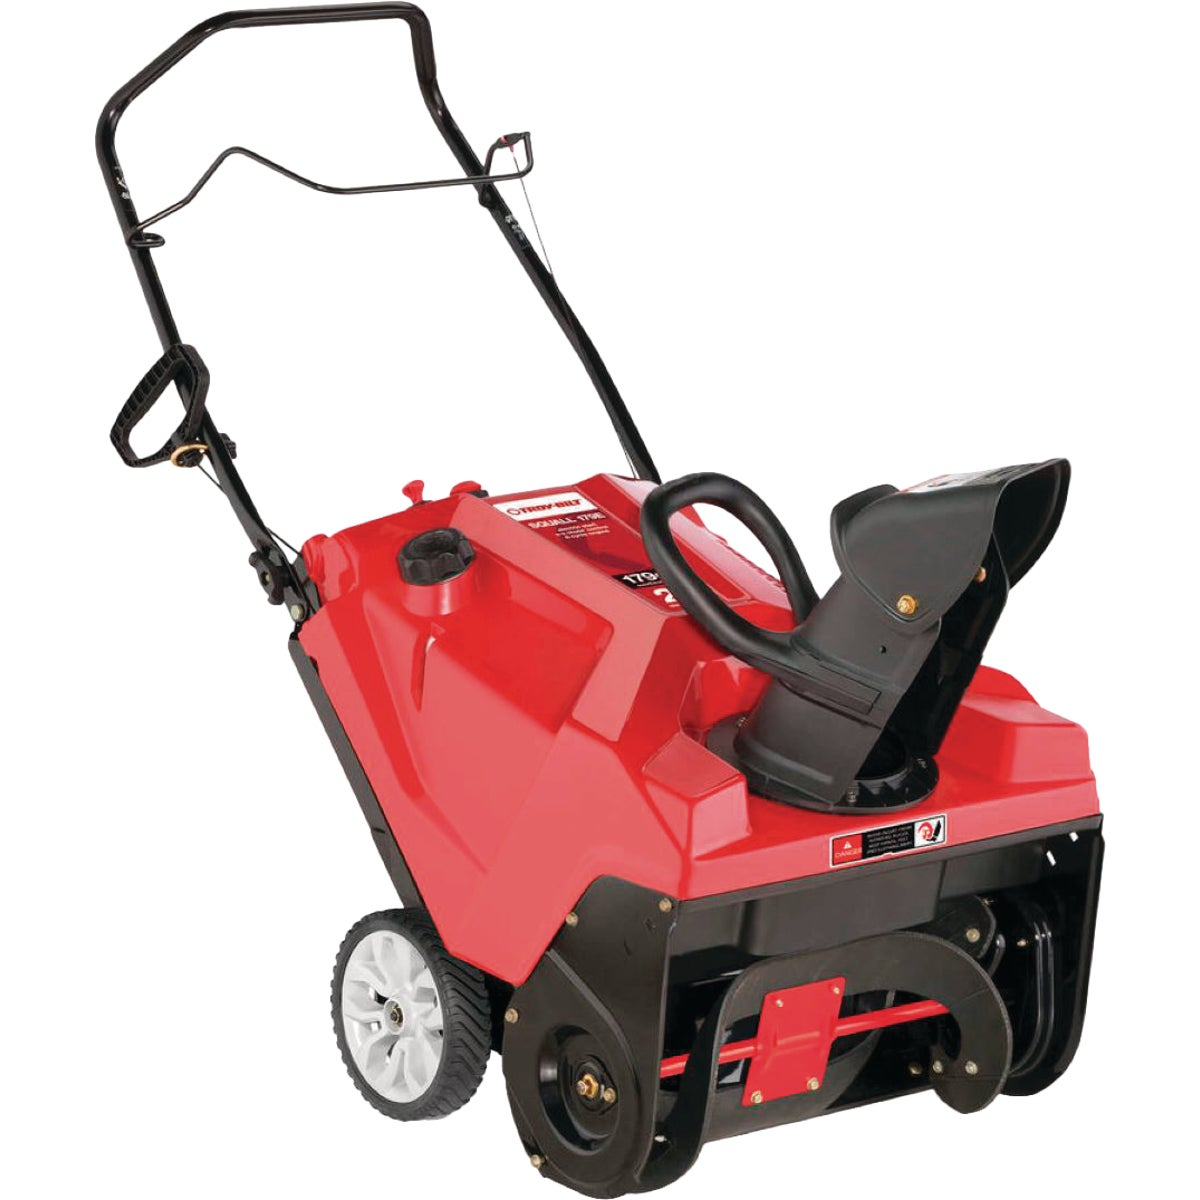 4-CYCLE SNOWTHROWER